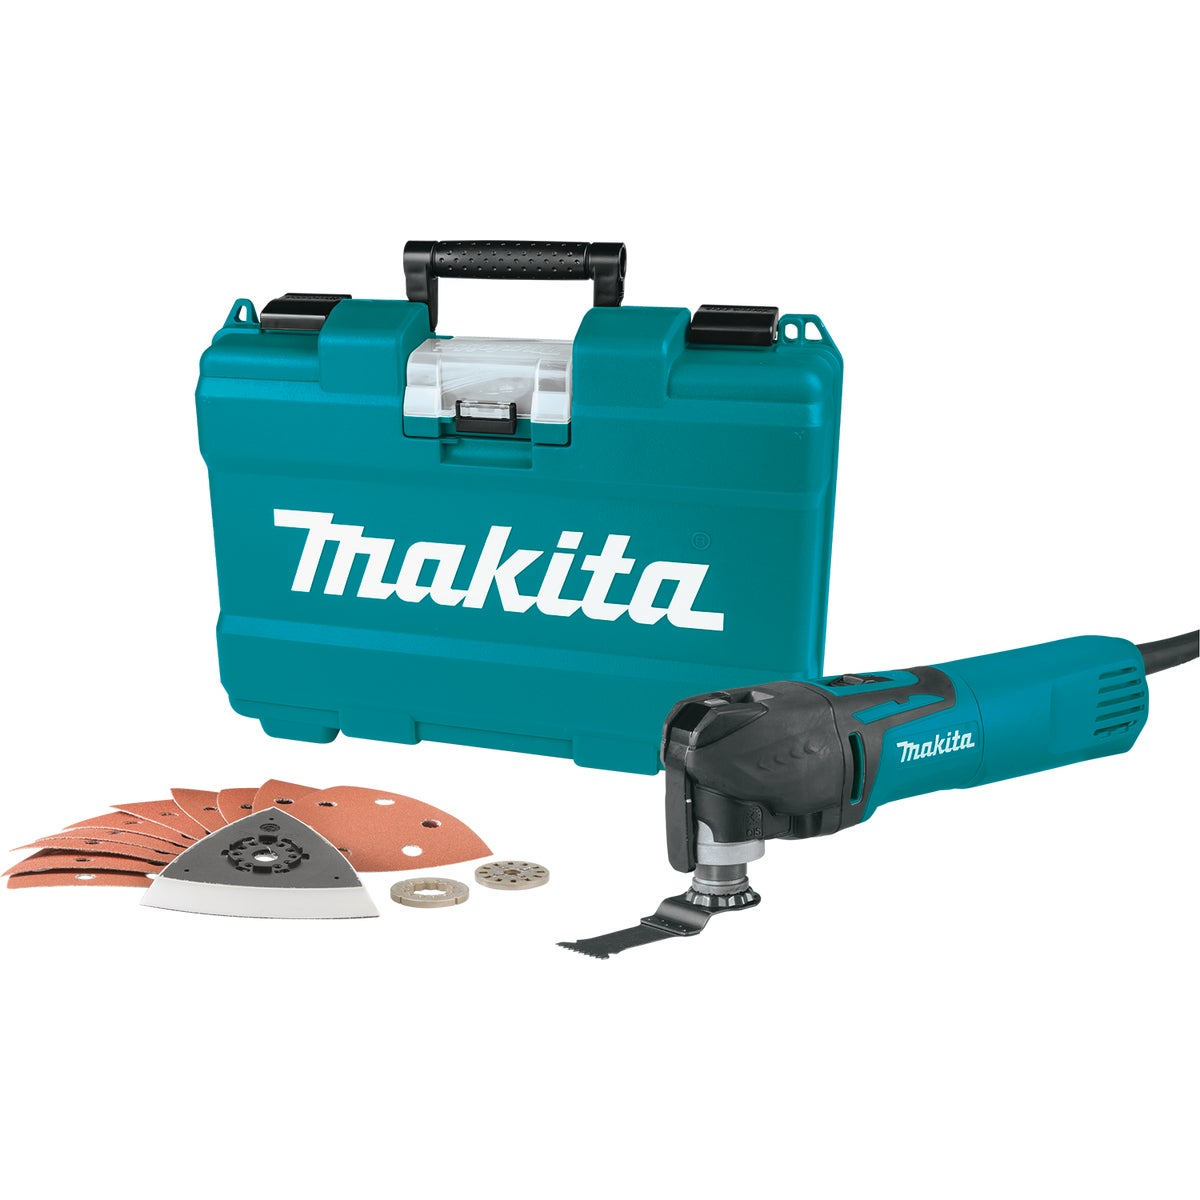 MULTI-TOOL KIT - TM3000CX5 by Makita Usa Inc